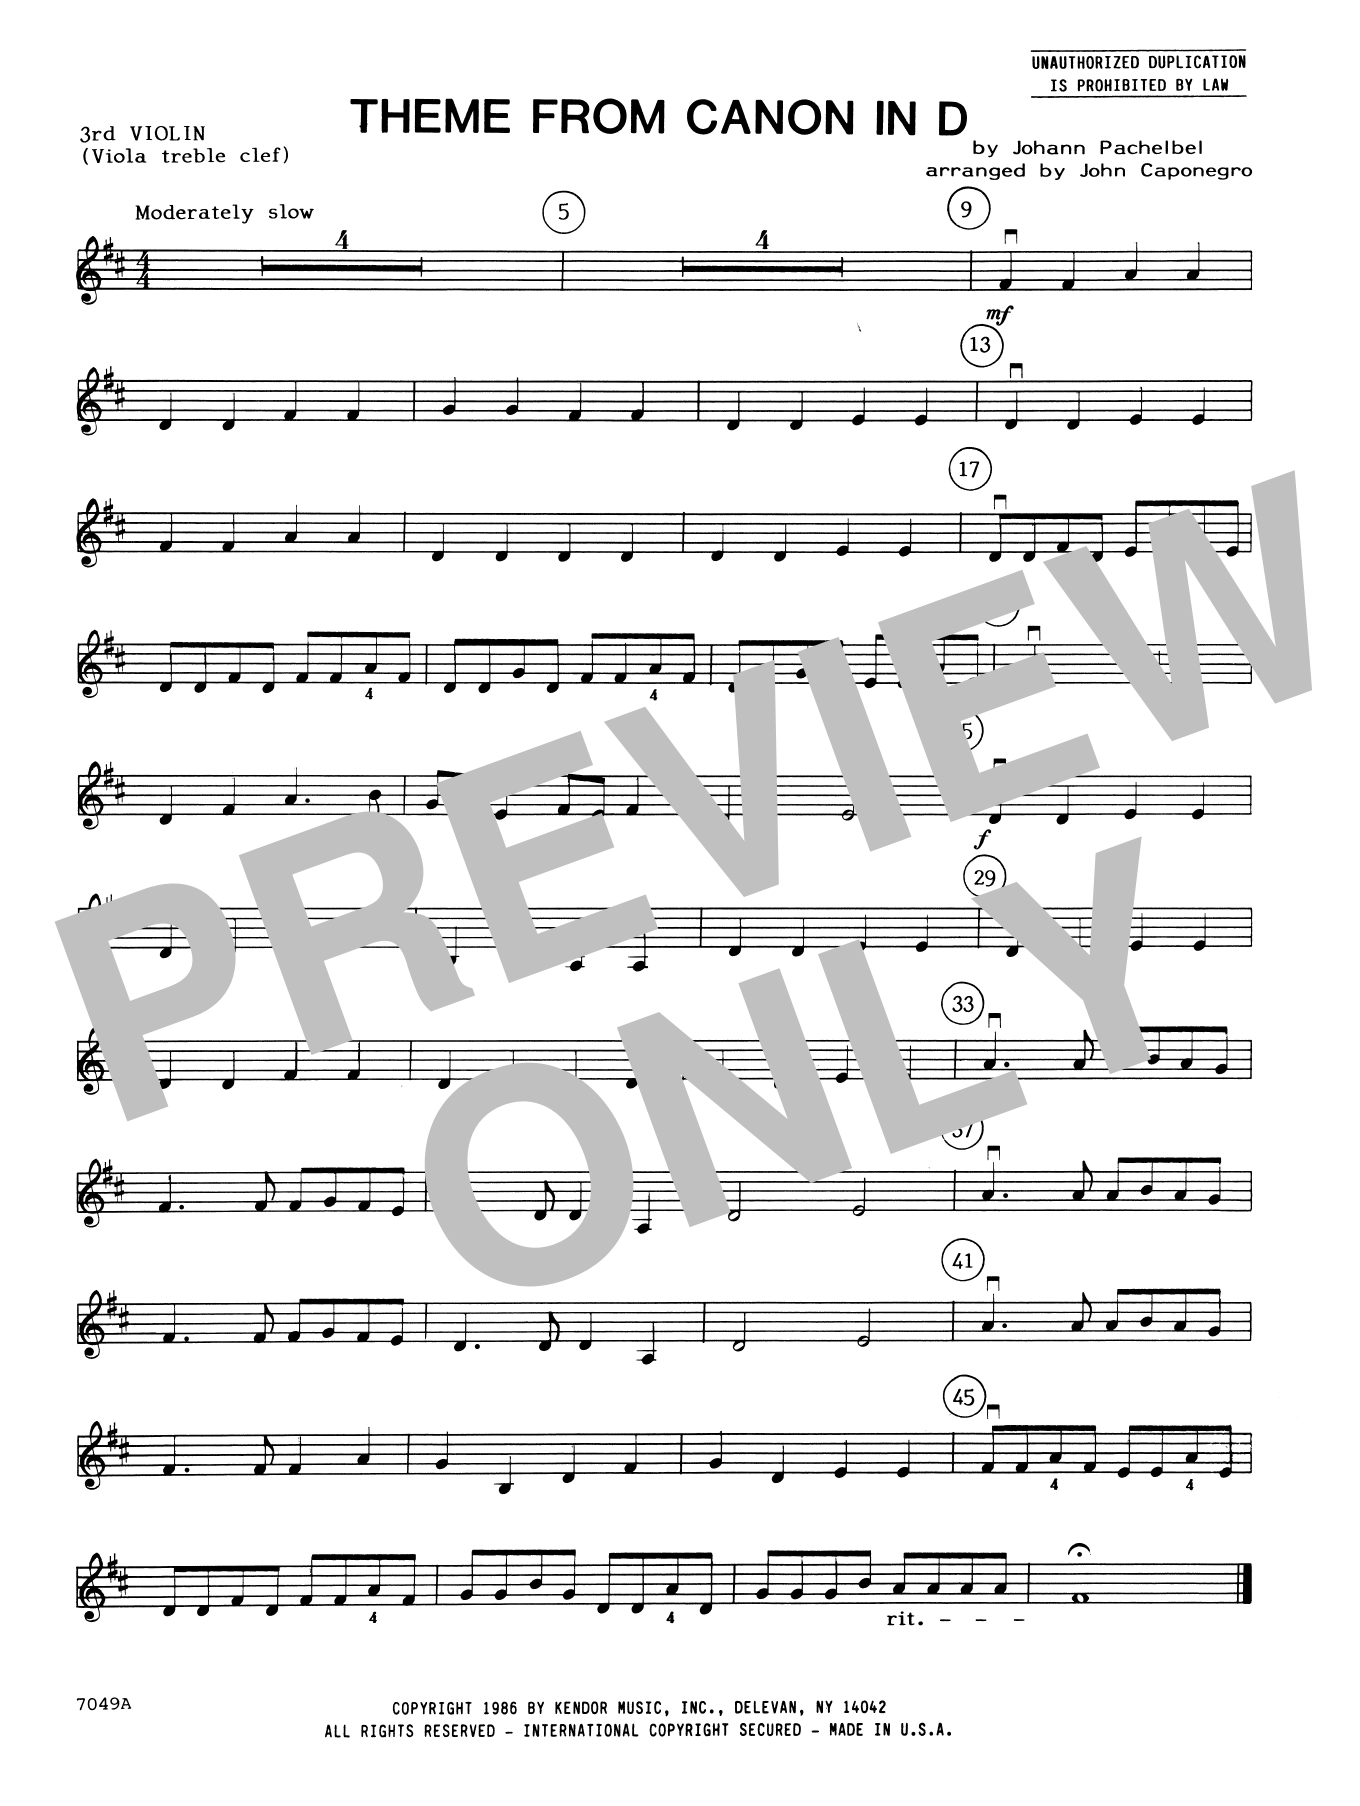 Sheet Music Digital Files To Print - Licensed Orchestra